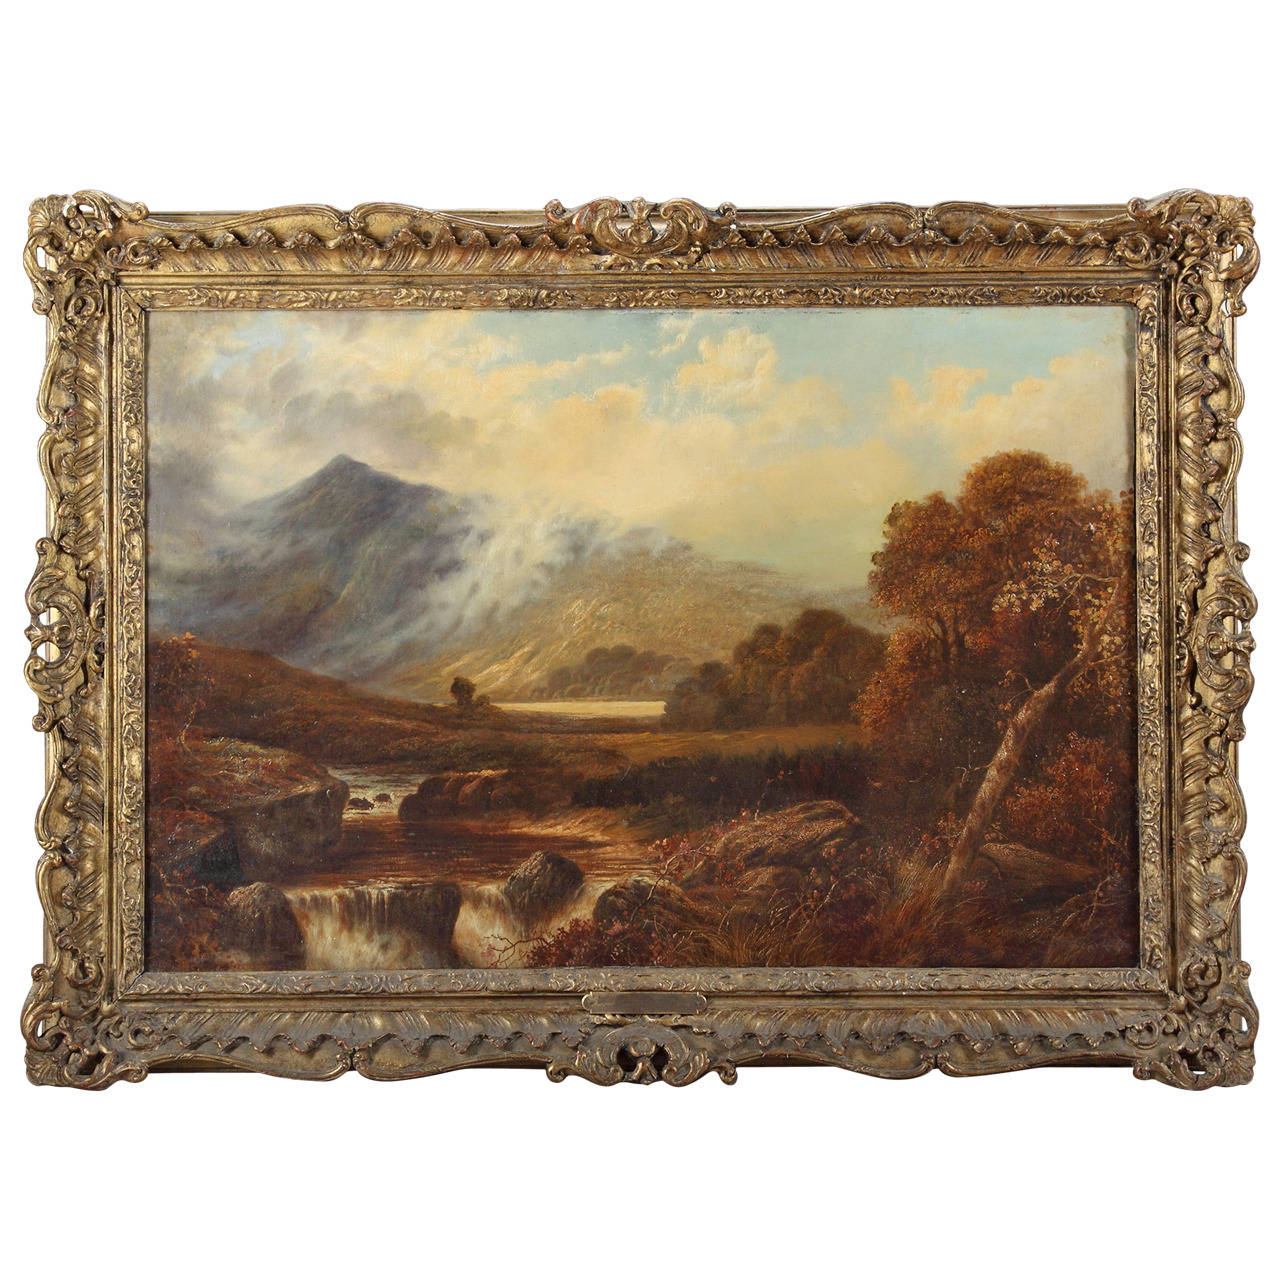 Continental Oil on Canvas Depicting Landscape, Circle of James Stark (1792-1859)